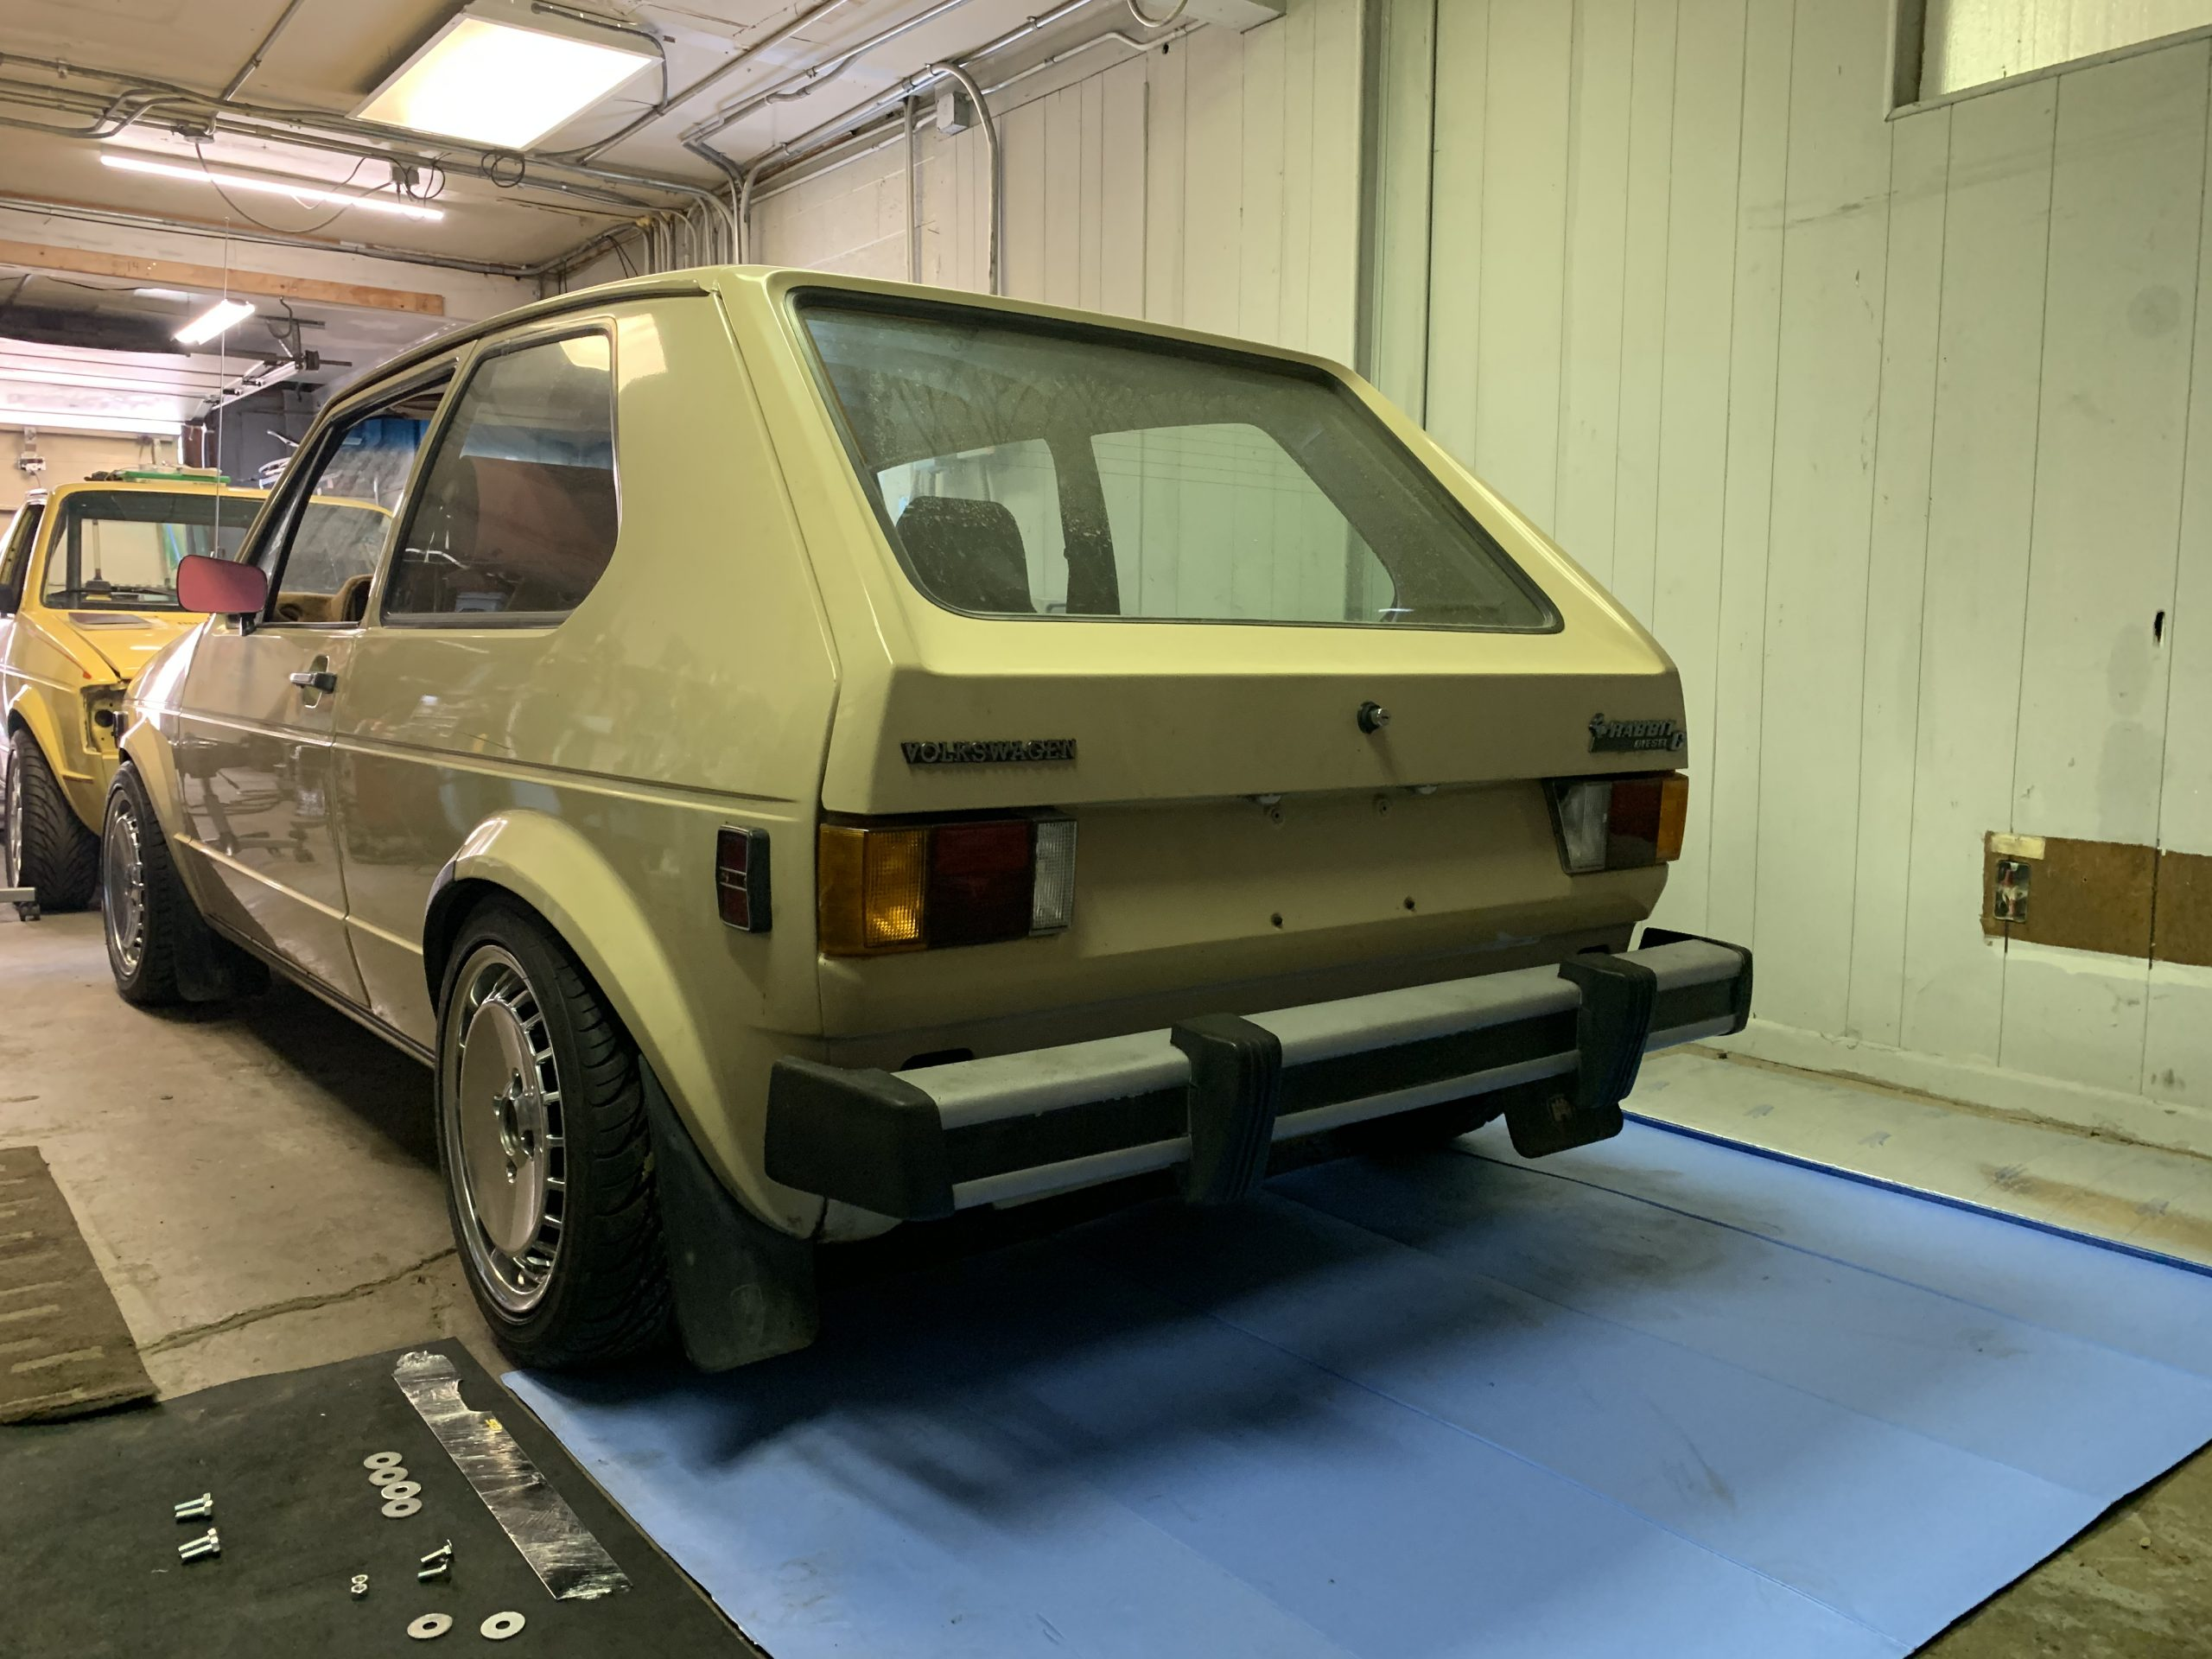 1980 VW Rabbit TDI swap shop old bumper Sep 01, 5 03 03 PM